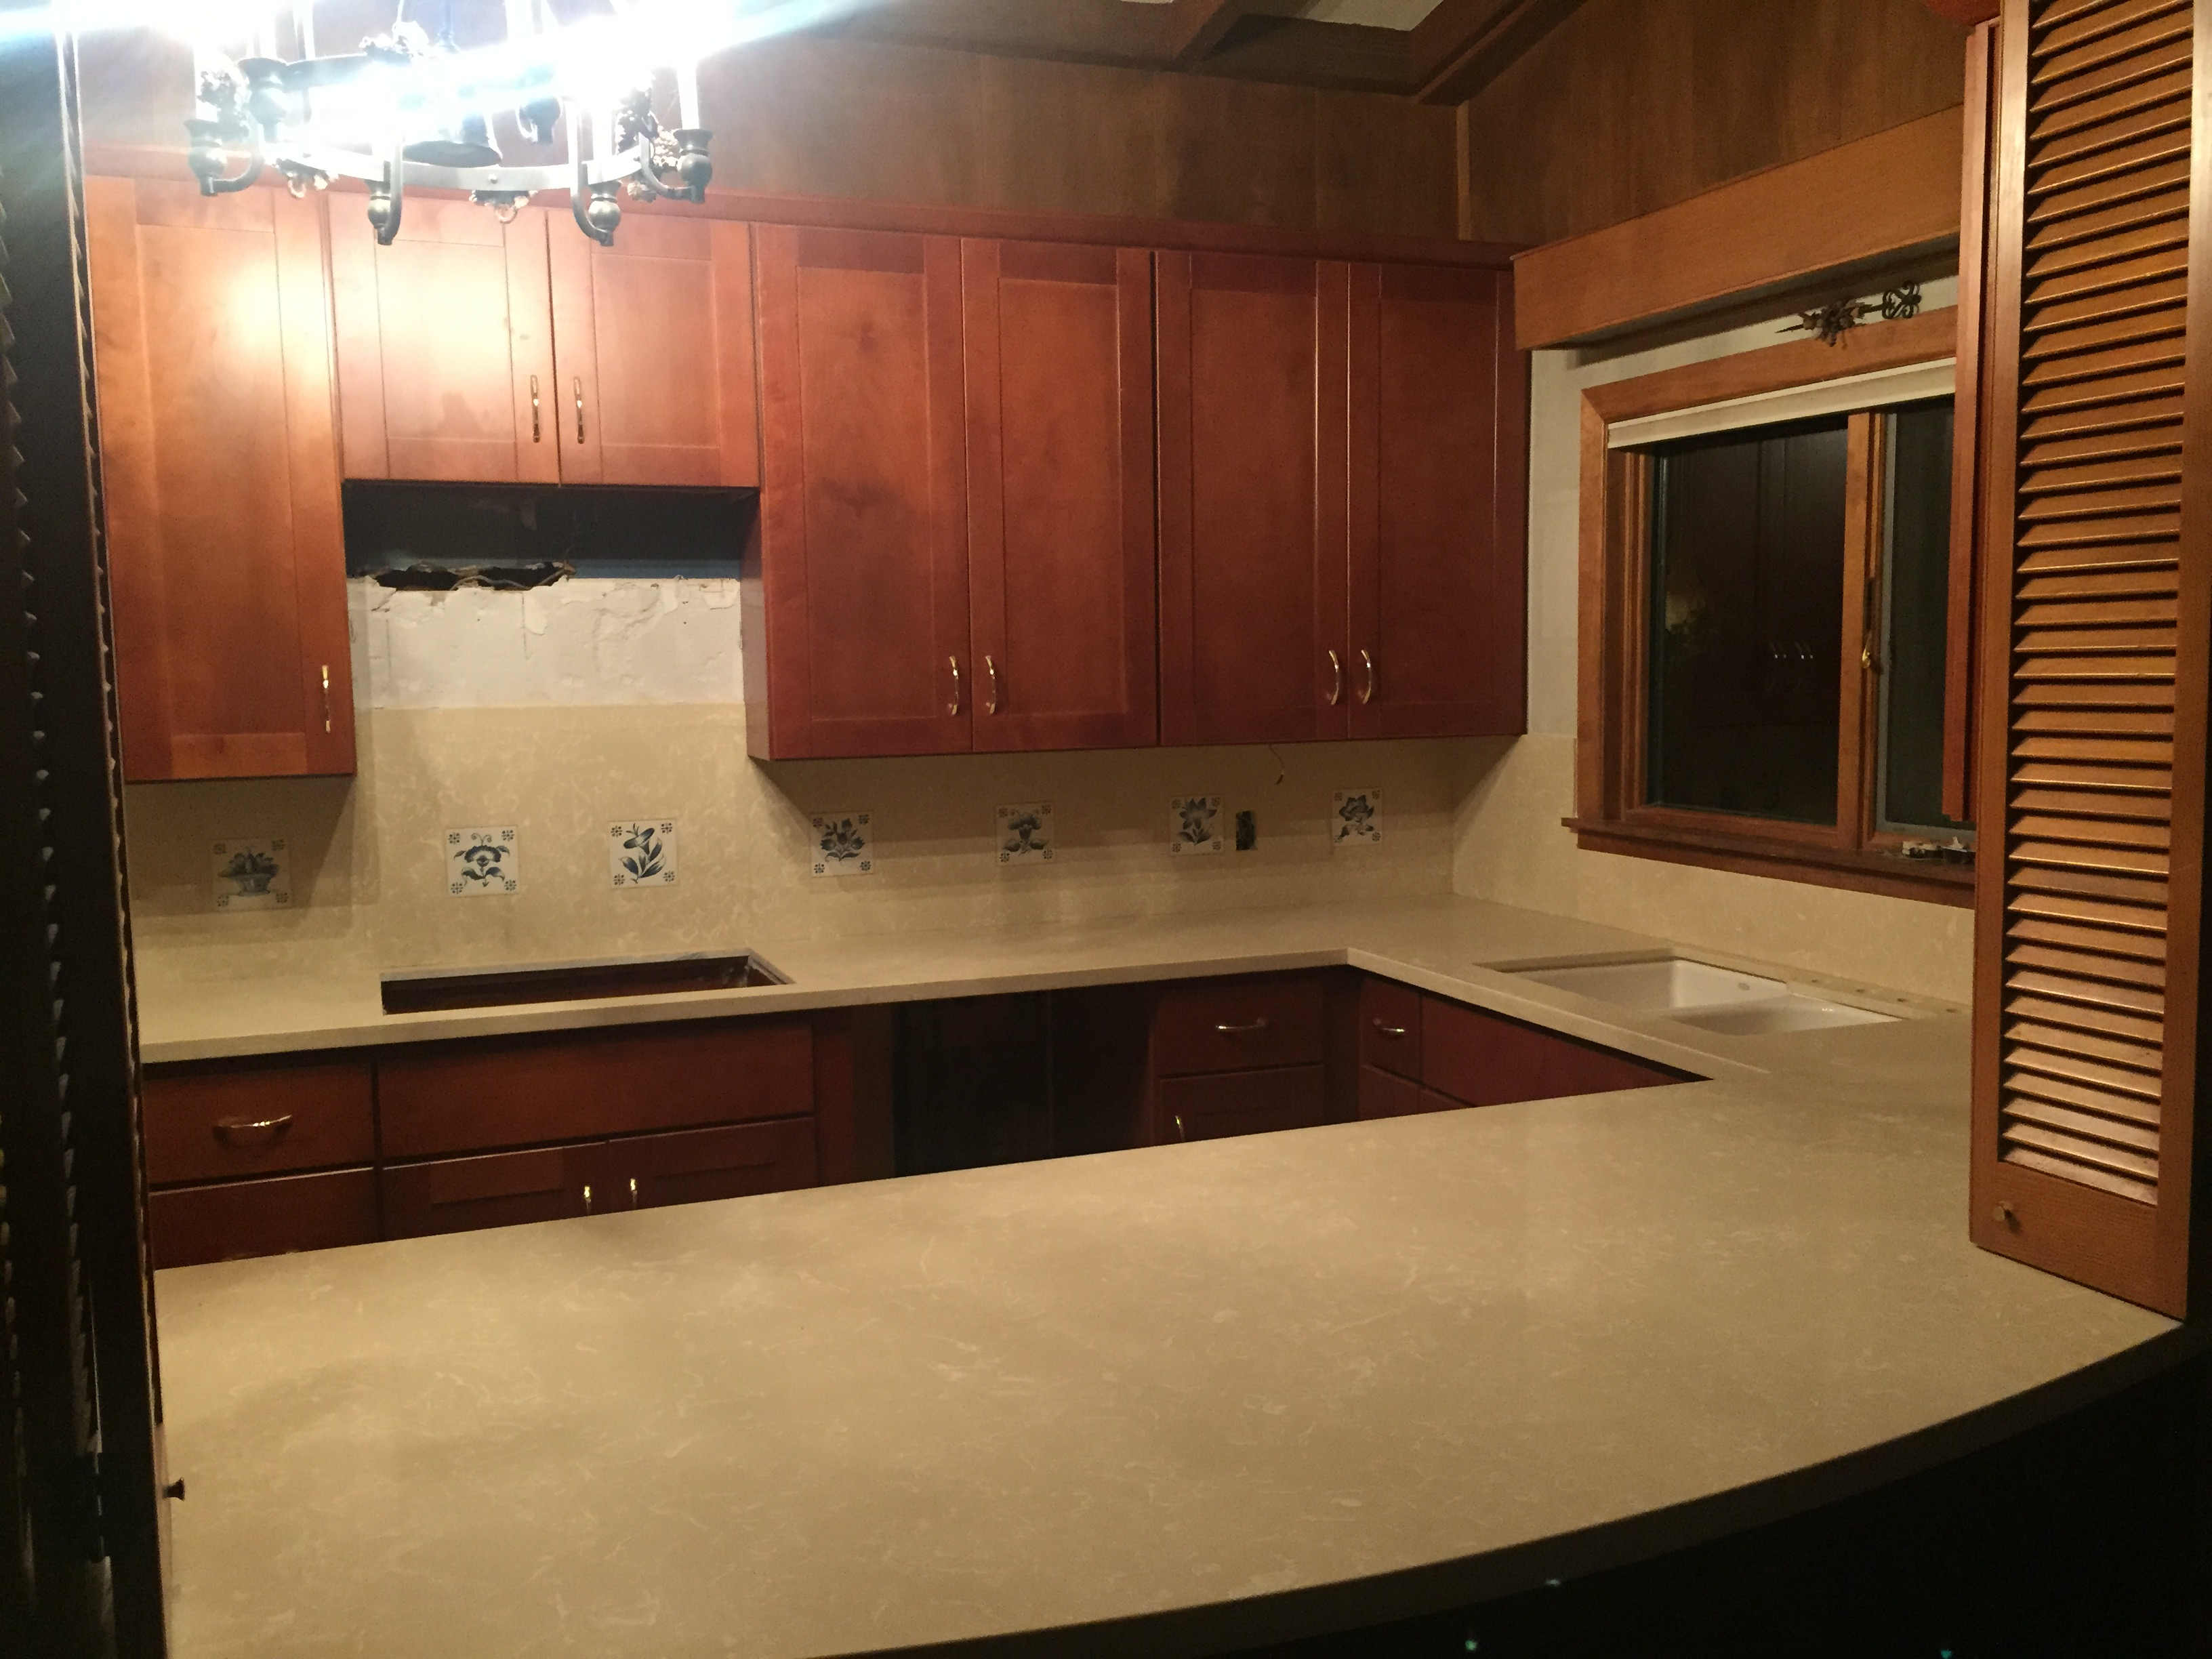 Kitchen Cinnamon Shaker Cabinets & Crema Marfil Quartz Counter Tops | Palmdale